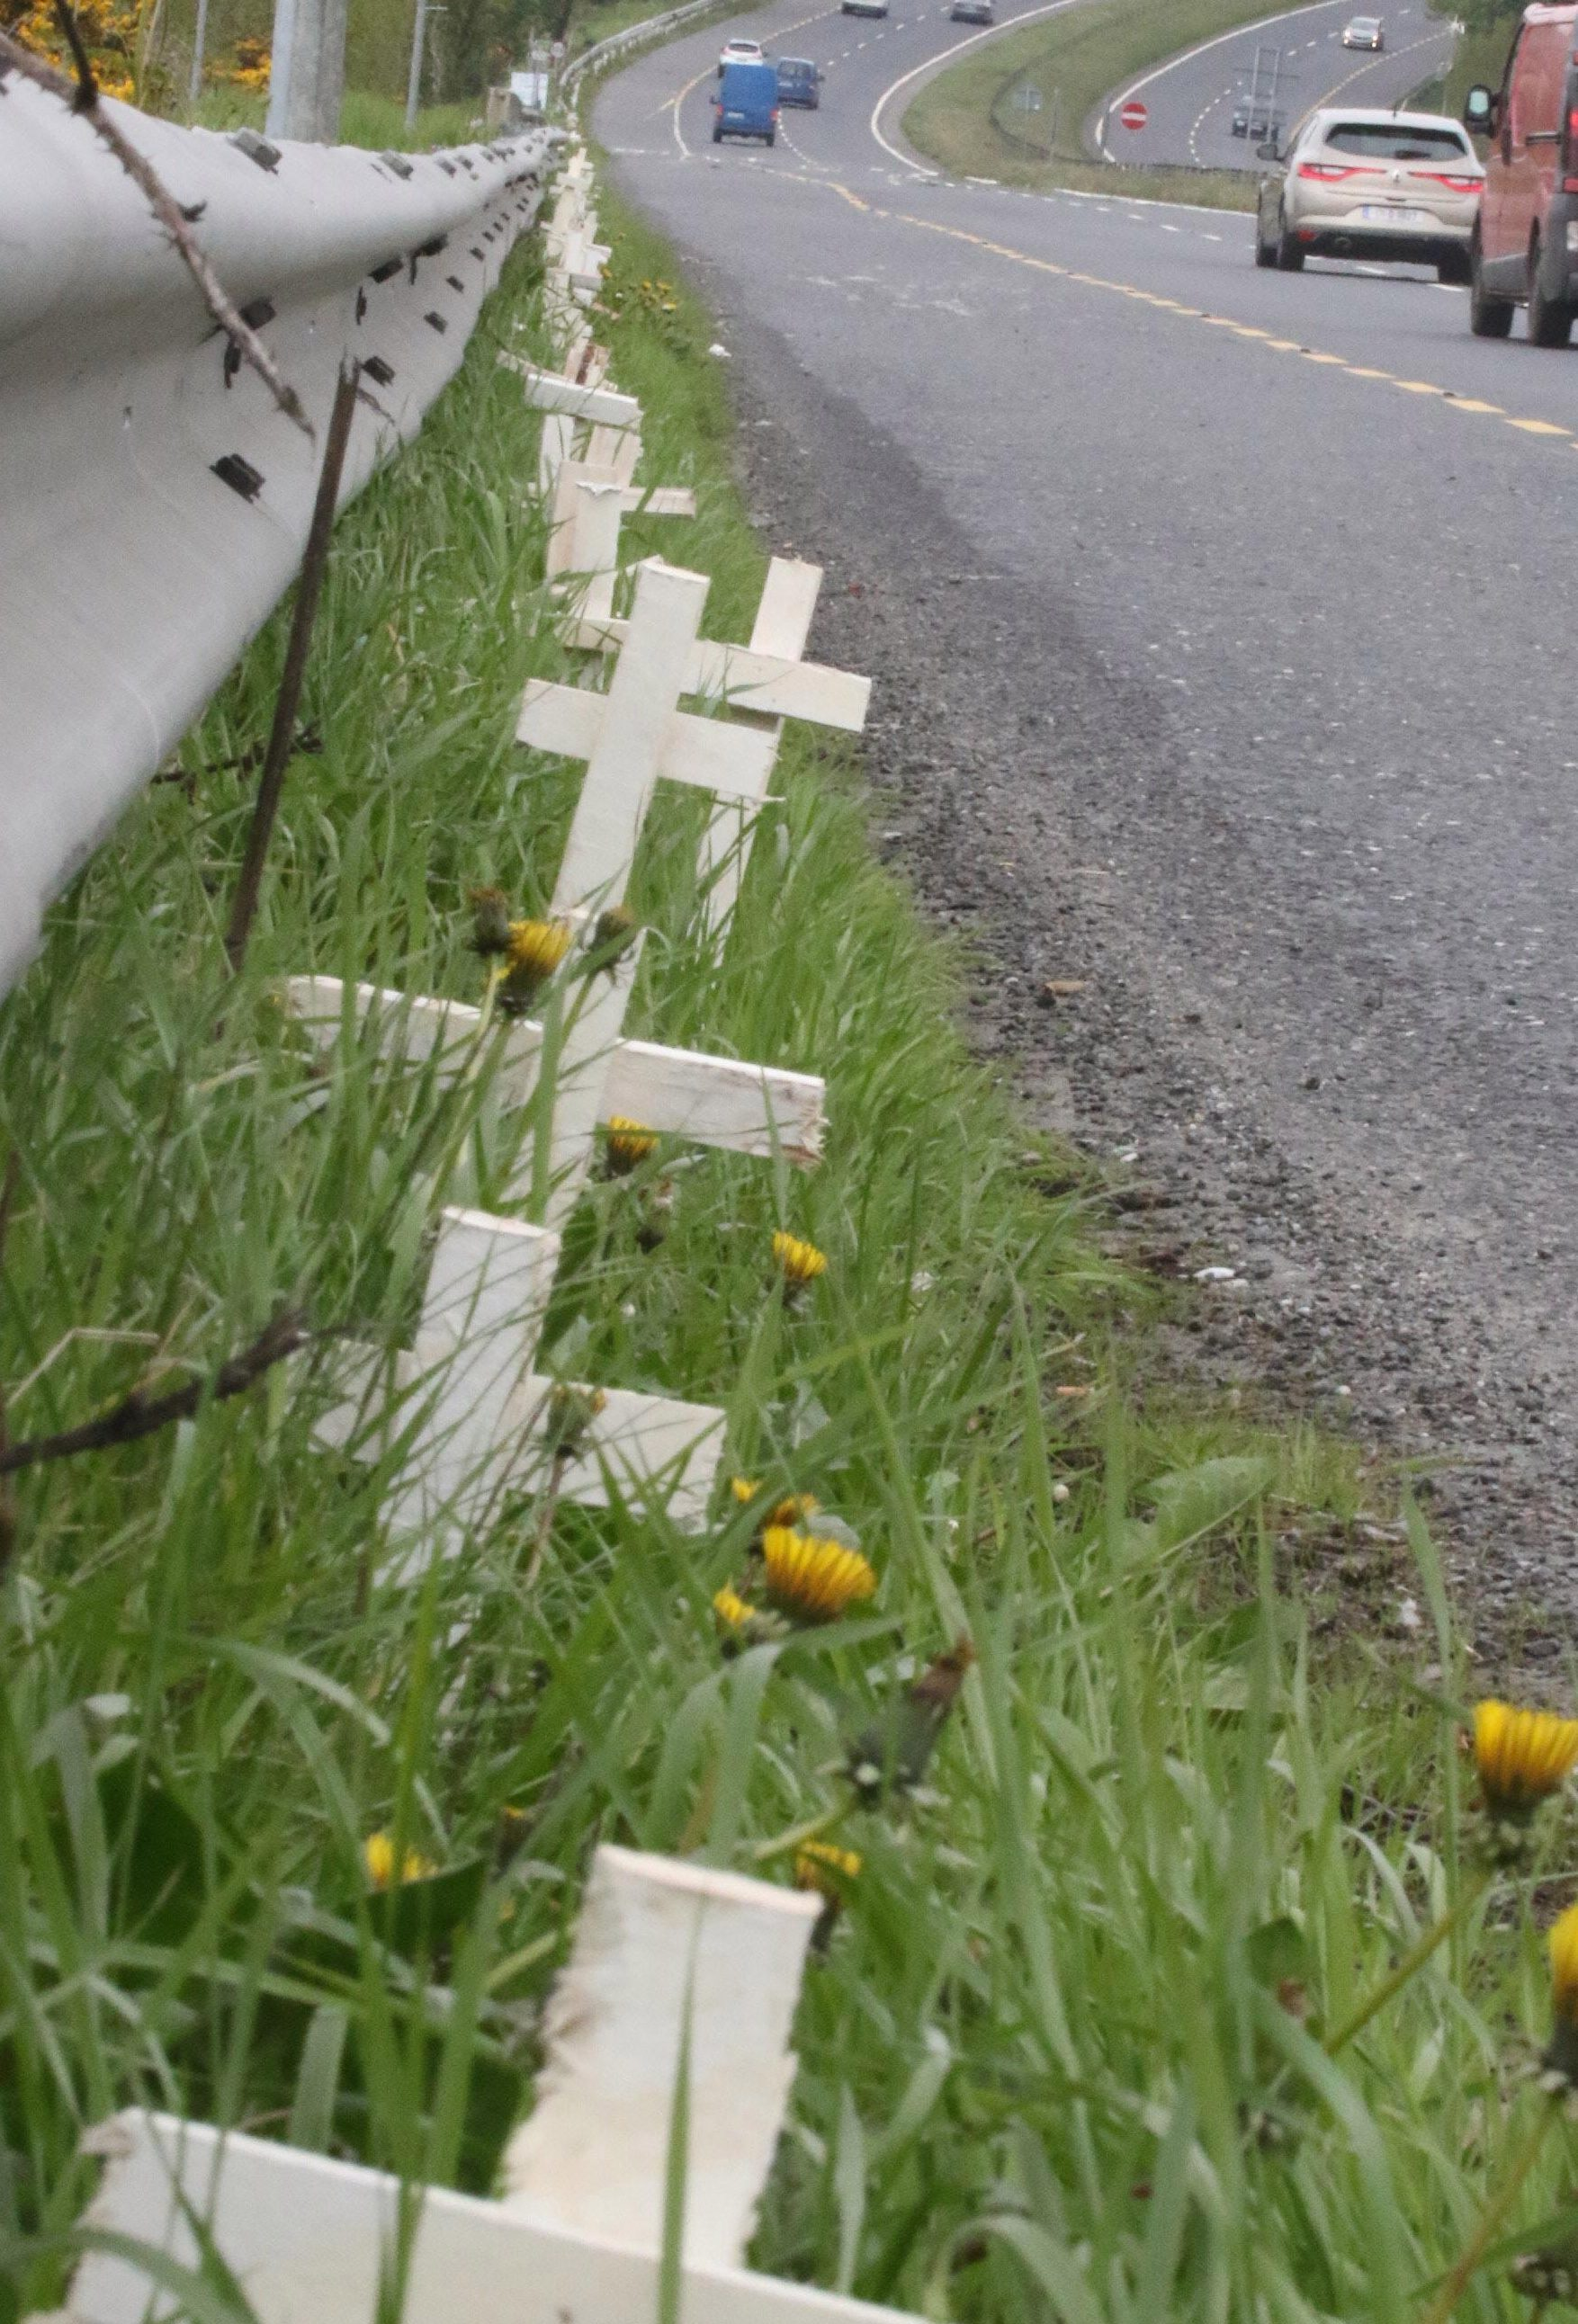 Risk Mitigation and The Road of White Crosses